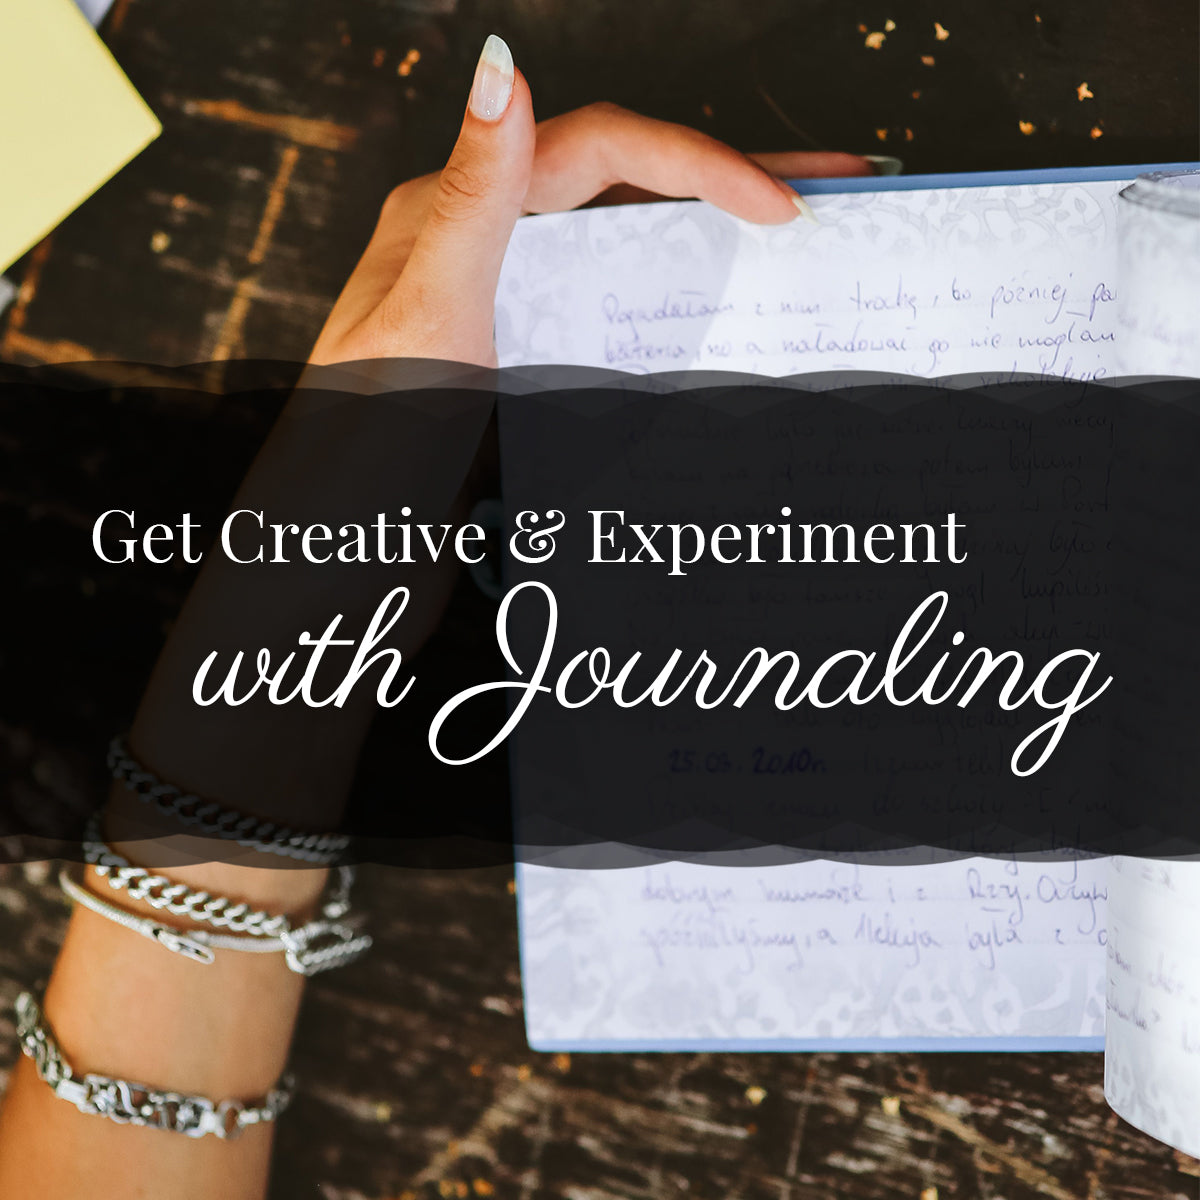 Get creative & experiment with journaling